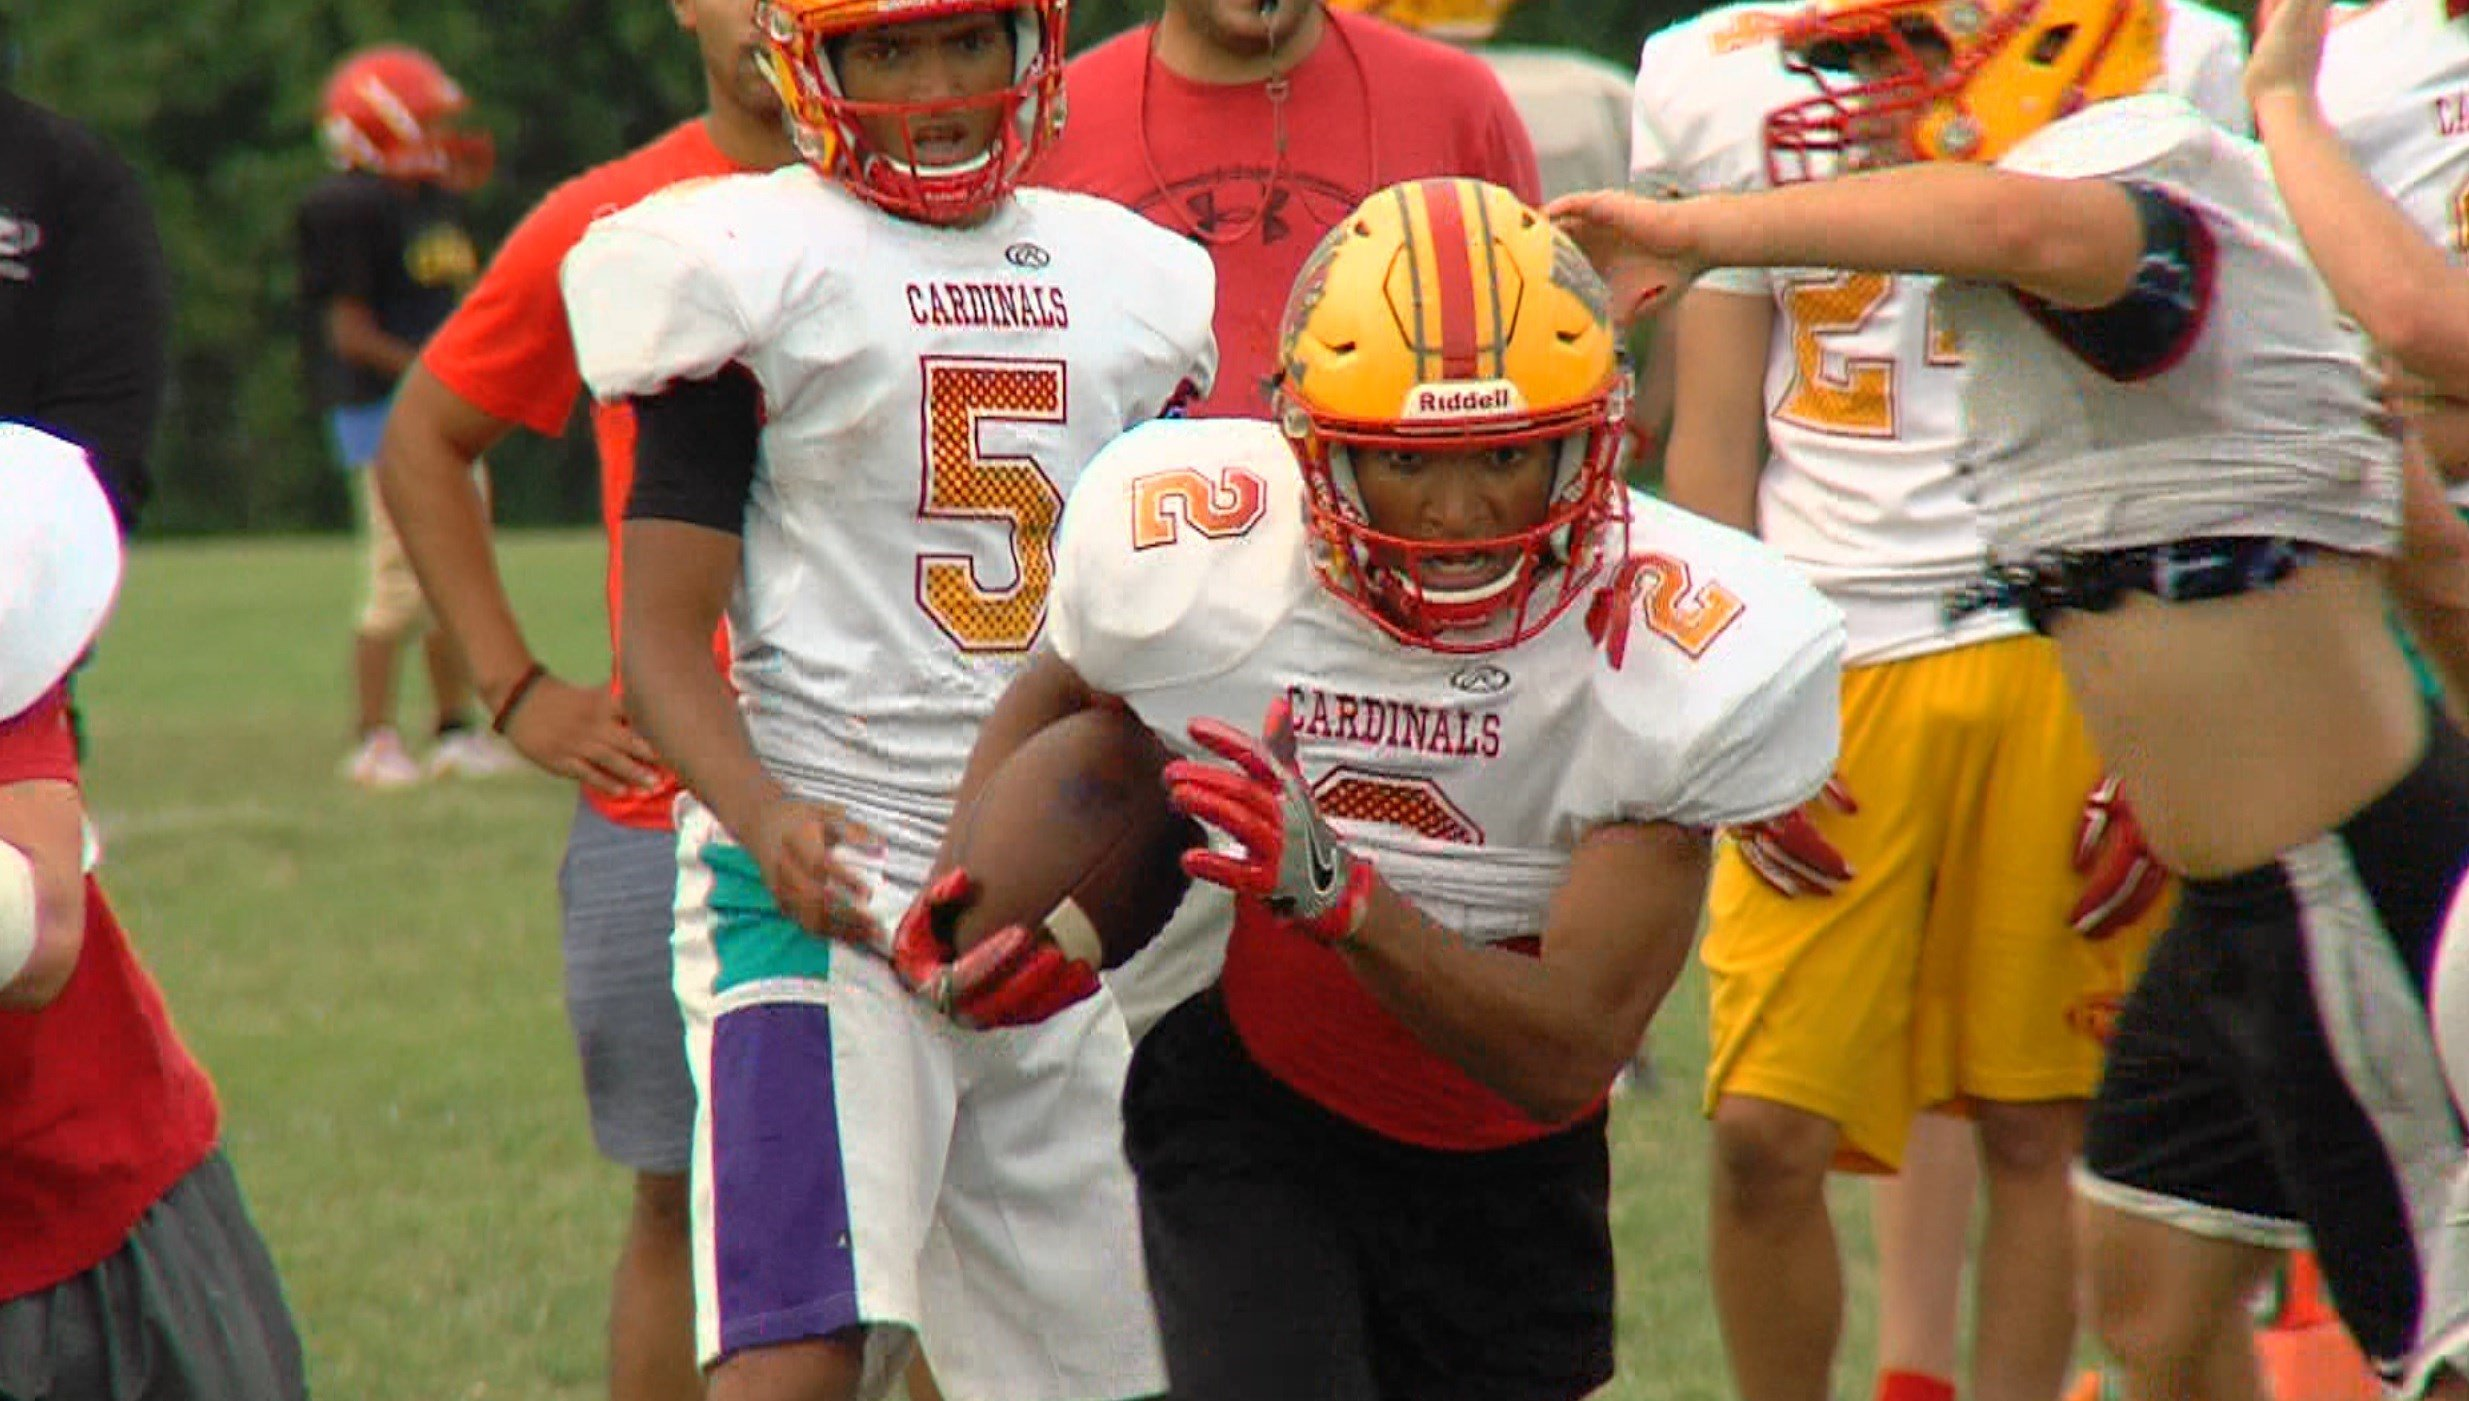 Twins Dionte (5) and Diondre (2) Lewis combined for an eye-popping 3,387 rushing yards last season for Warrensburg-Latham.